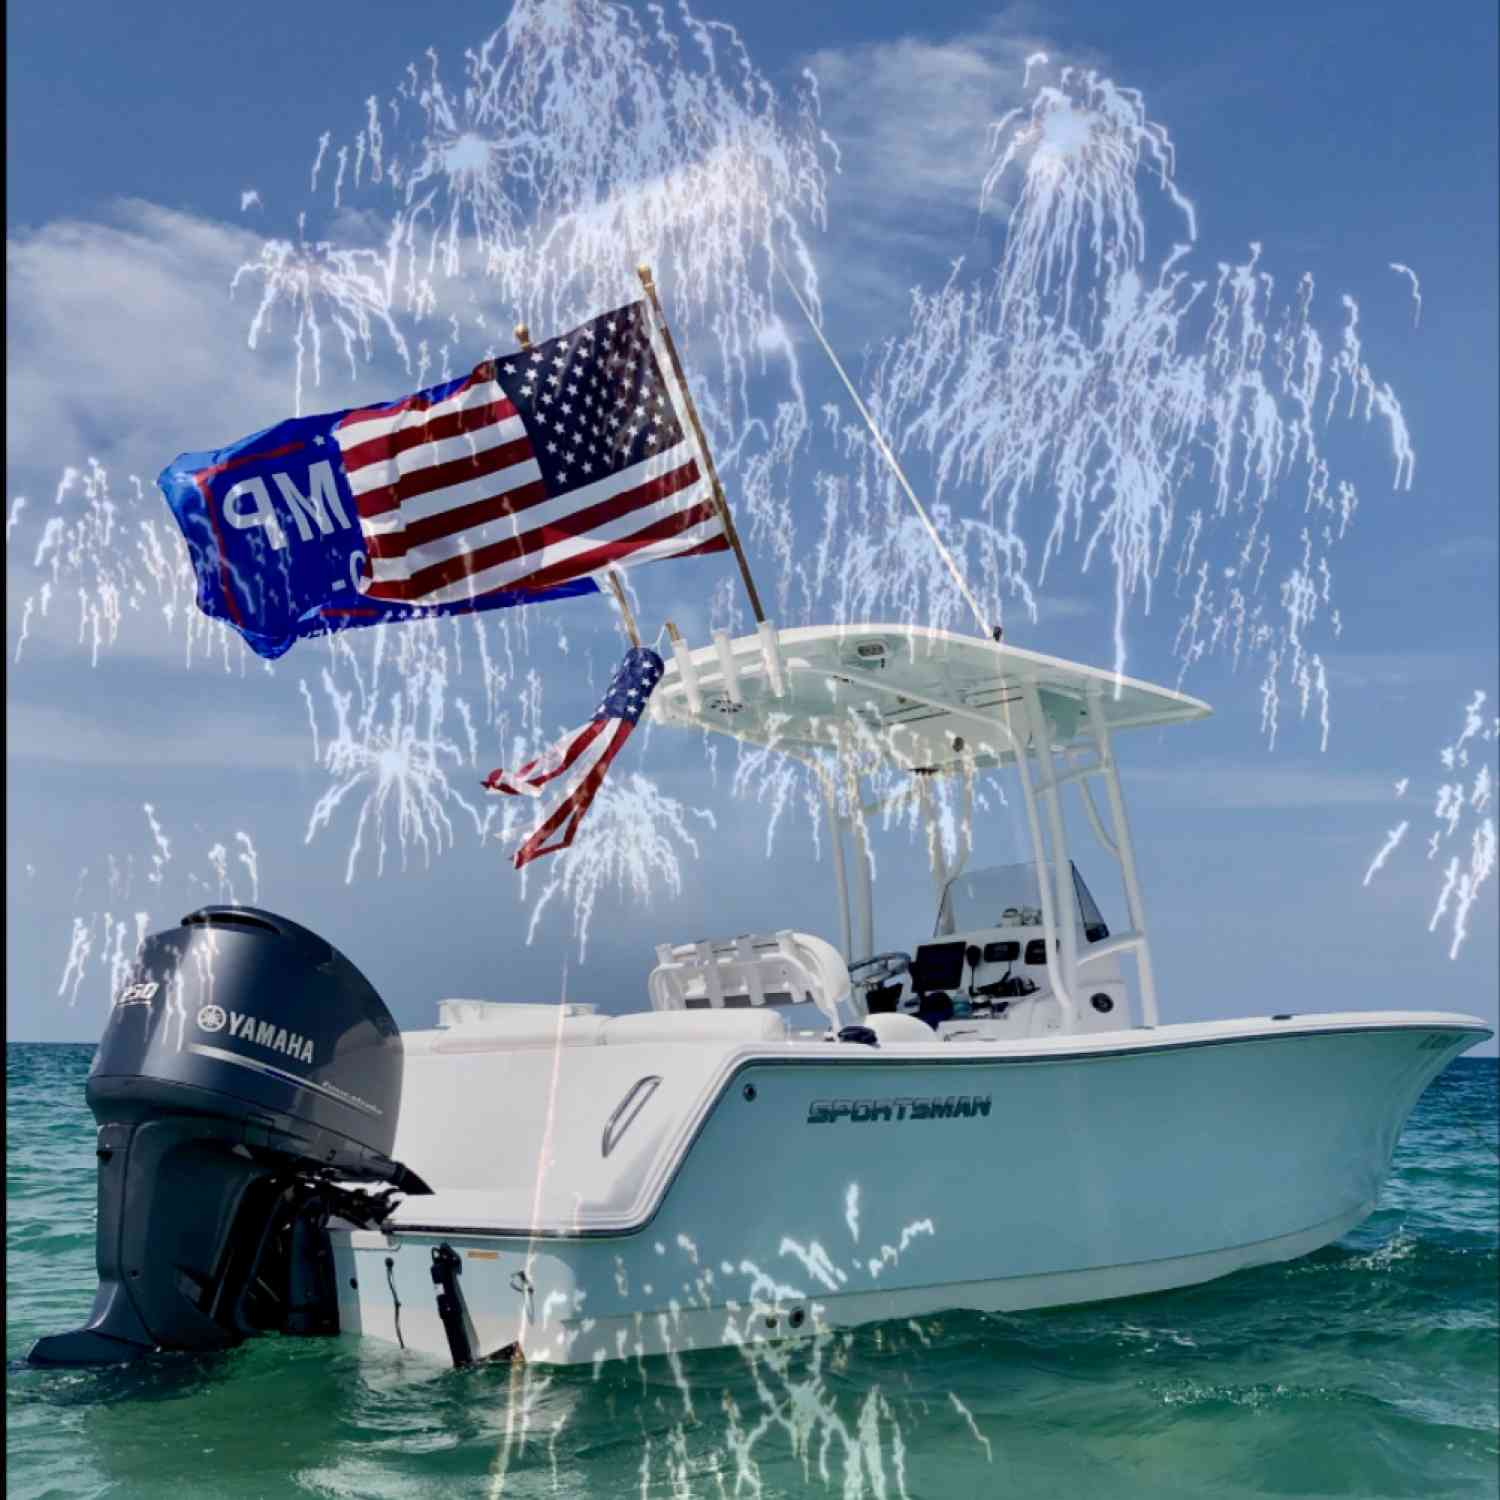 Title: Make America Great, Again! - On board their Sportsman Heritage 231 Center Console - Location: The Cove ~ Ft. Pierce Florida Inlet. Participating in the Photo Contest #SportsmanAugust2020